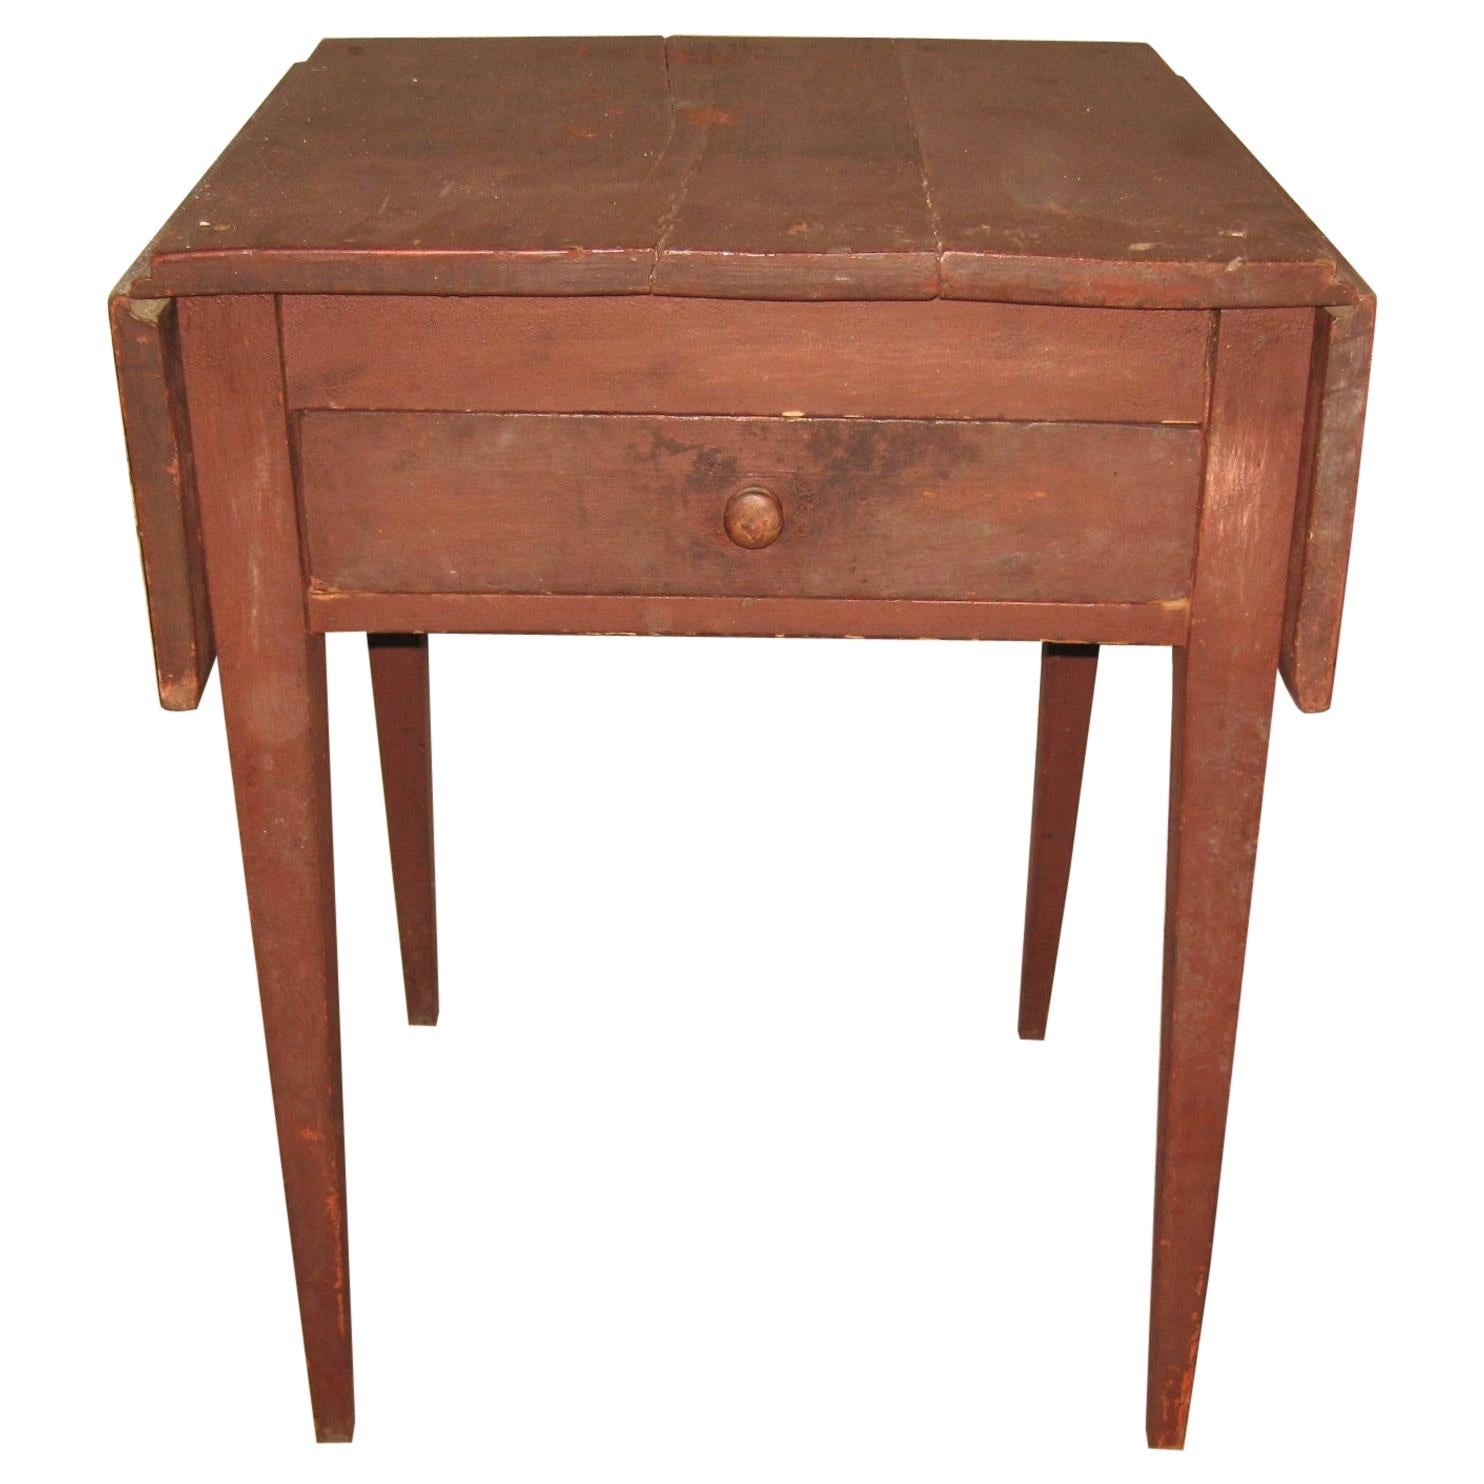 19th Century Primitive Tapered Leg 1-Drawer Stand Old Red Paint